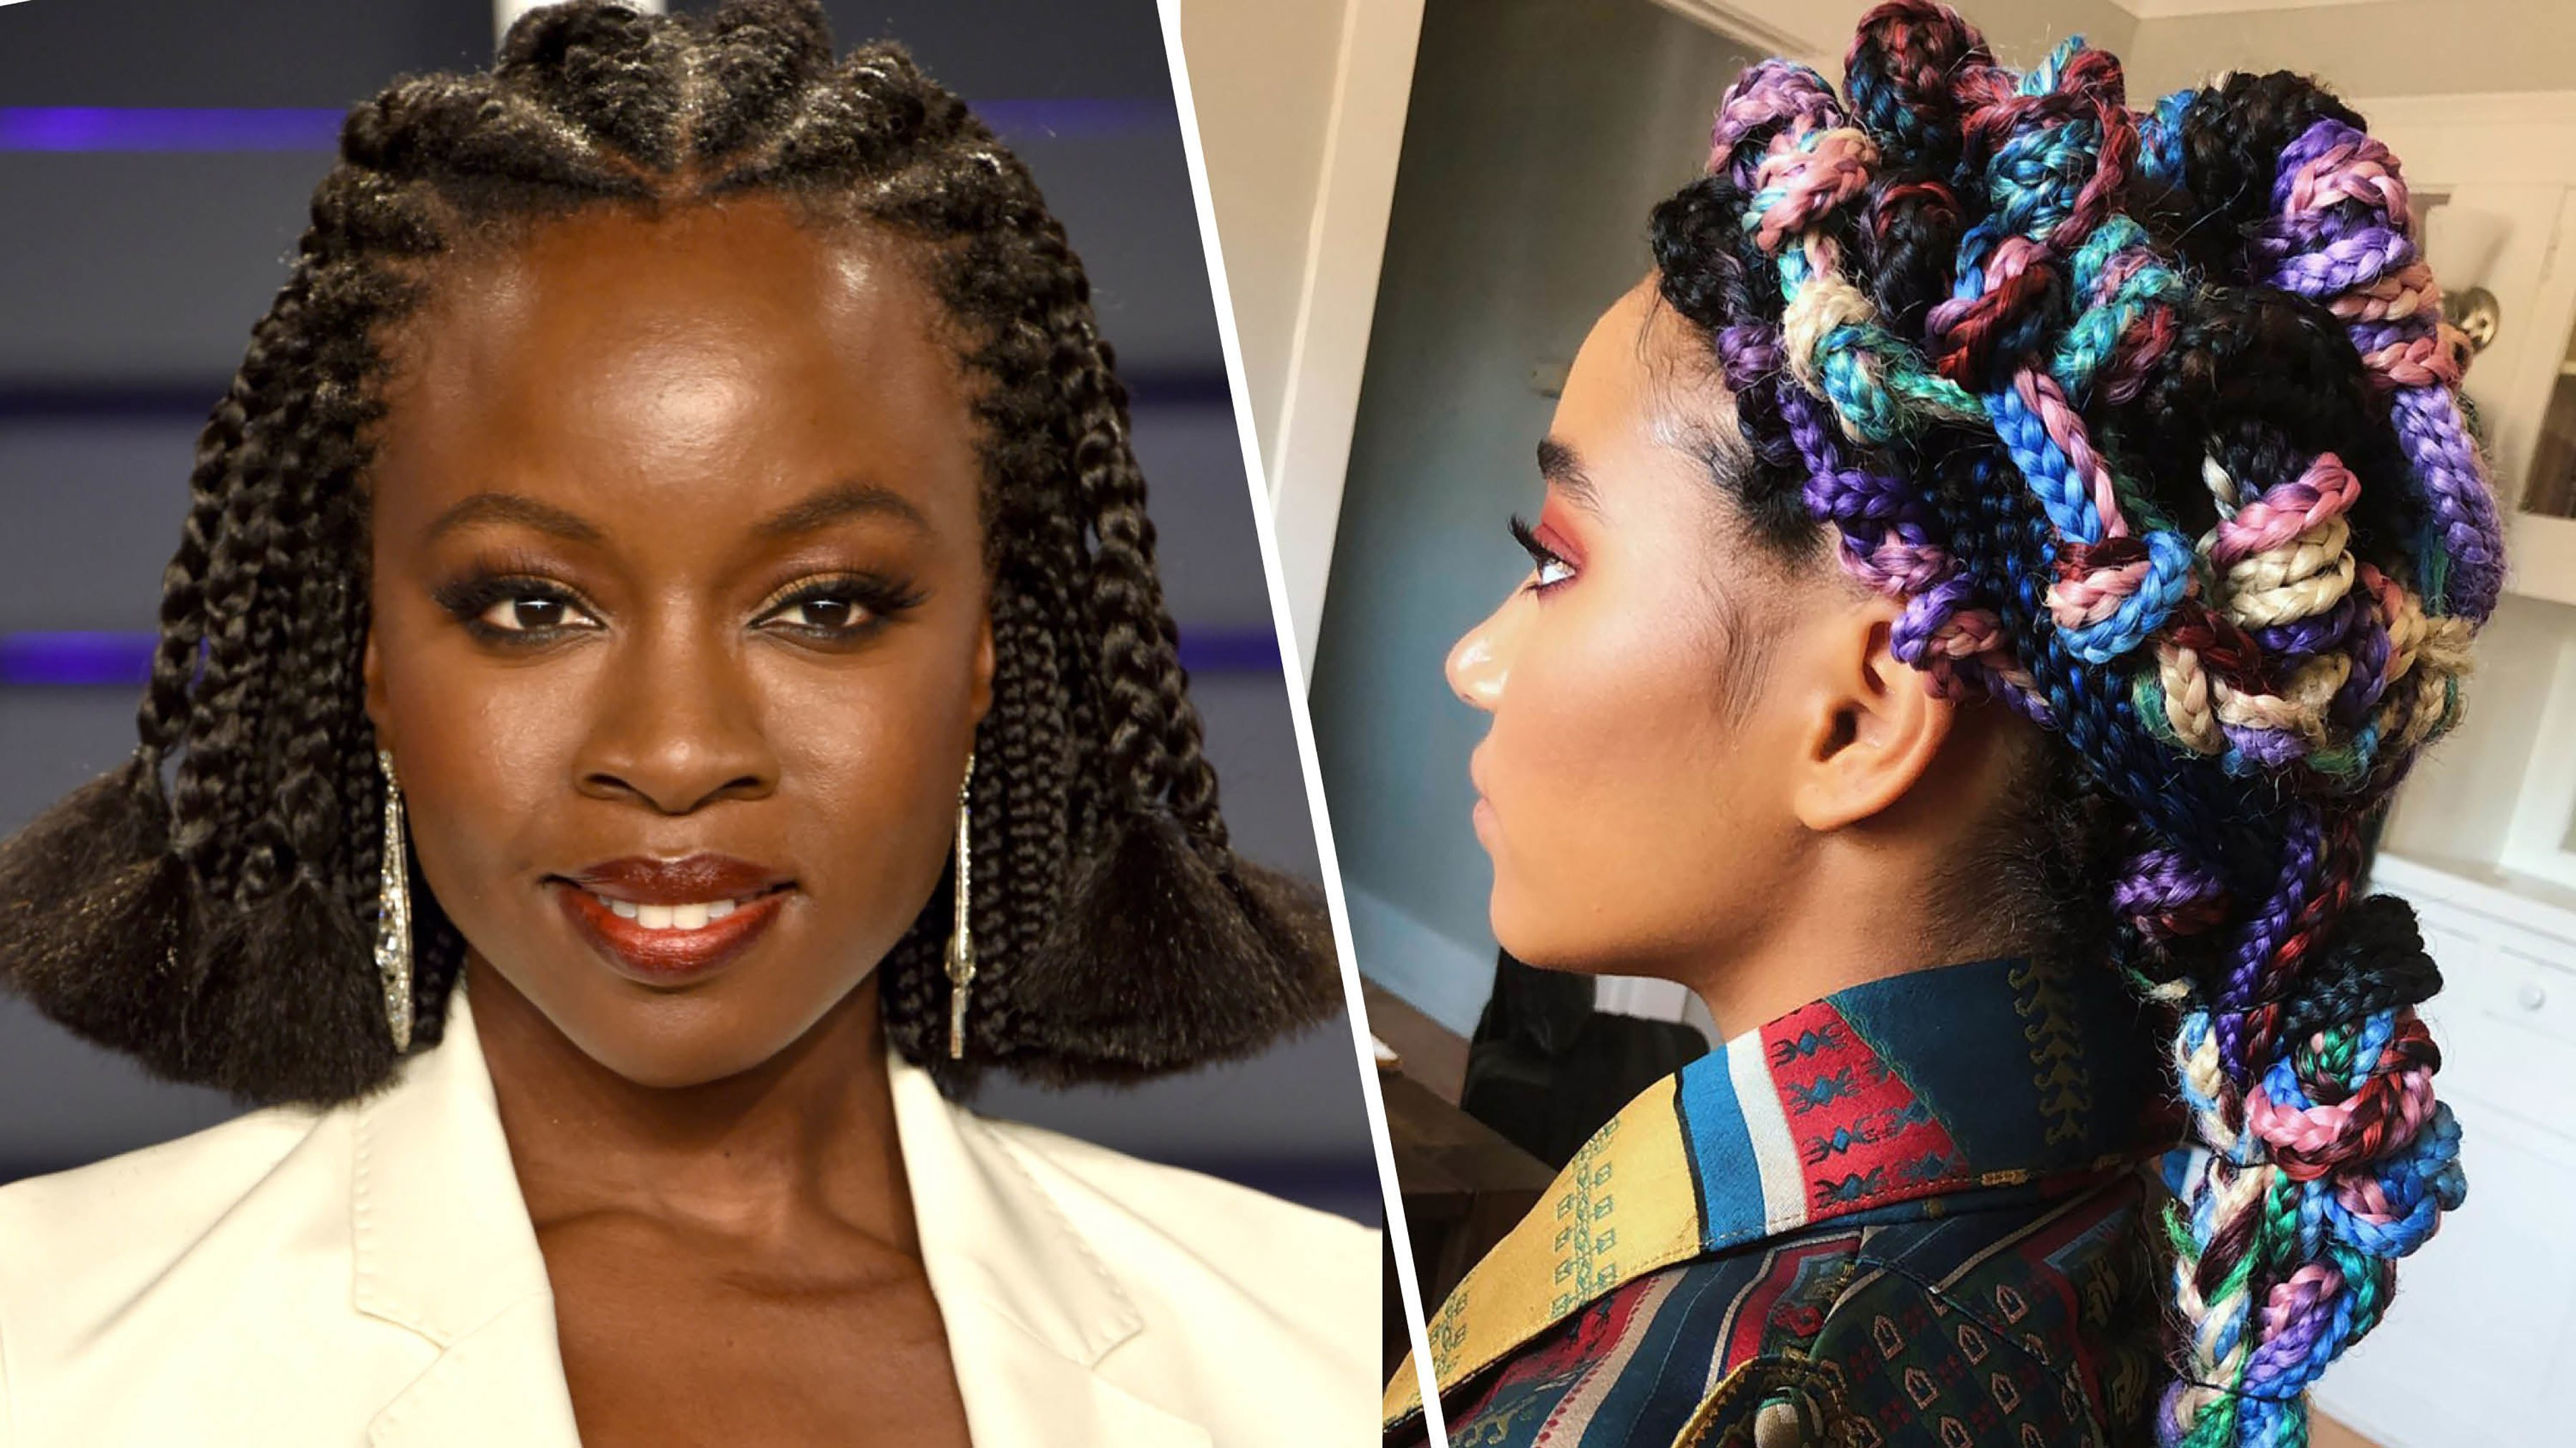 Current Turned And Twisted Pigtails Hairstyles With Front Fringes With 21 Dope Box Braids Hairstyles To Try (View 8 of 20)